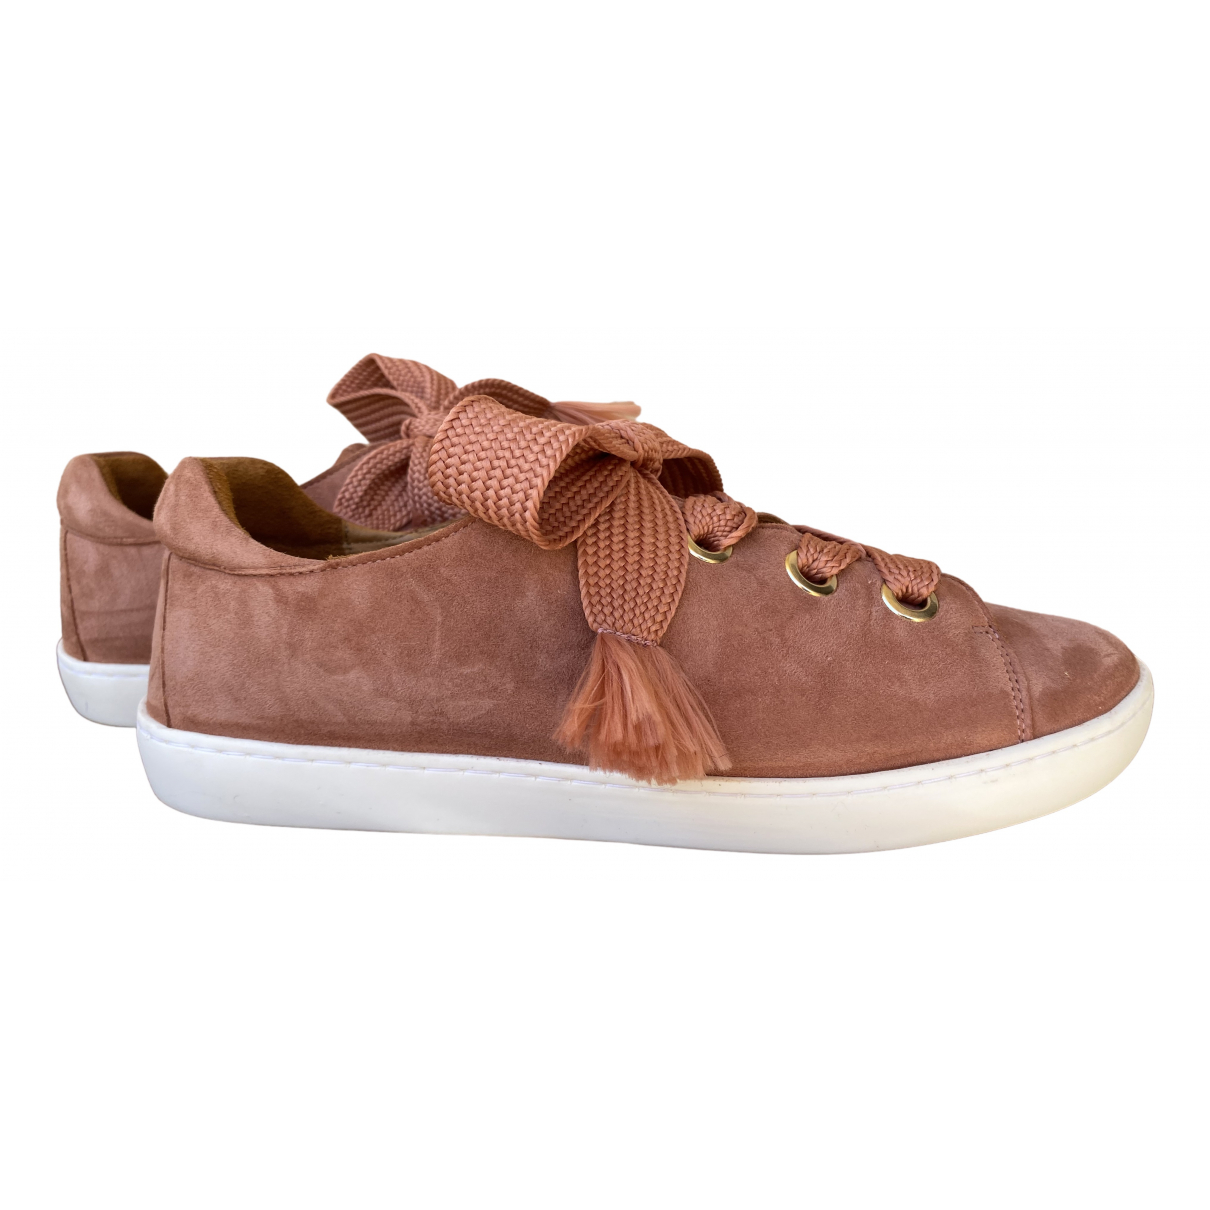 Sézane Spring Summer 2020 Pink Leather Trainers for Women 41 EU